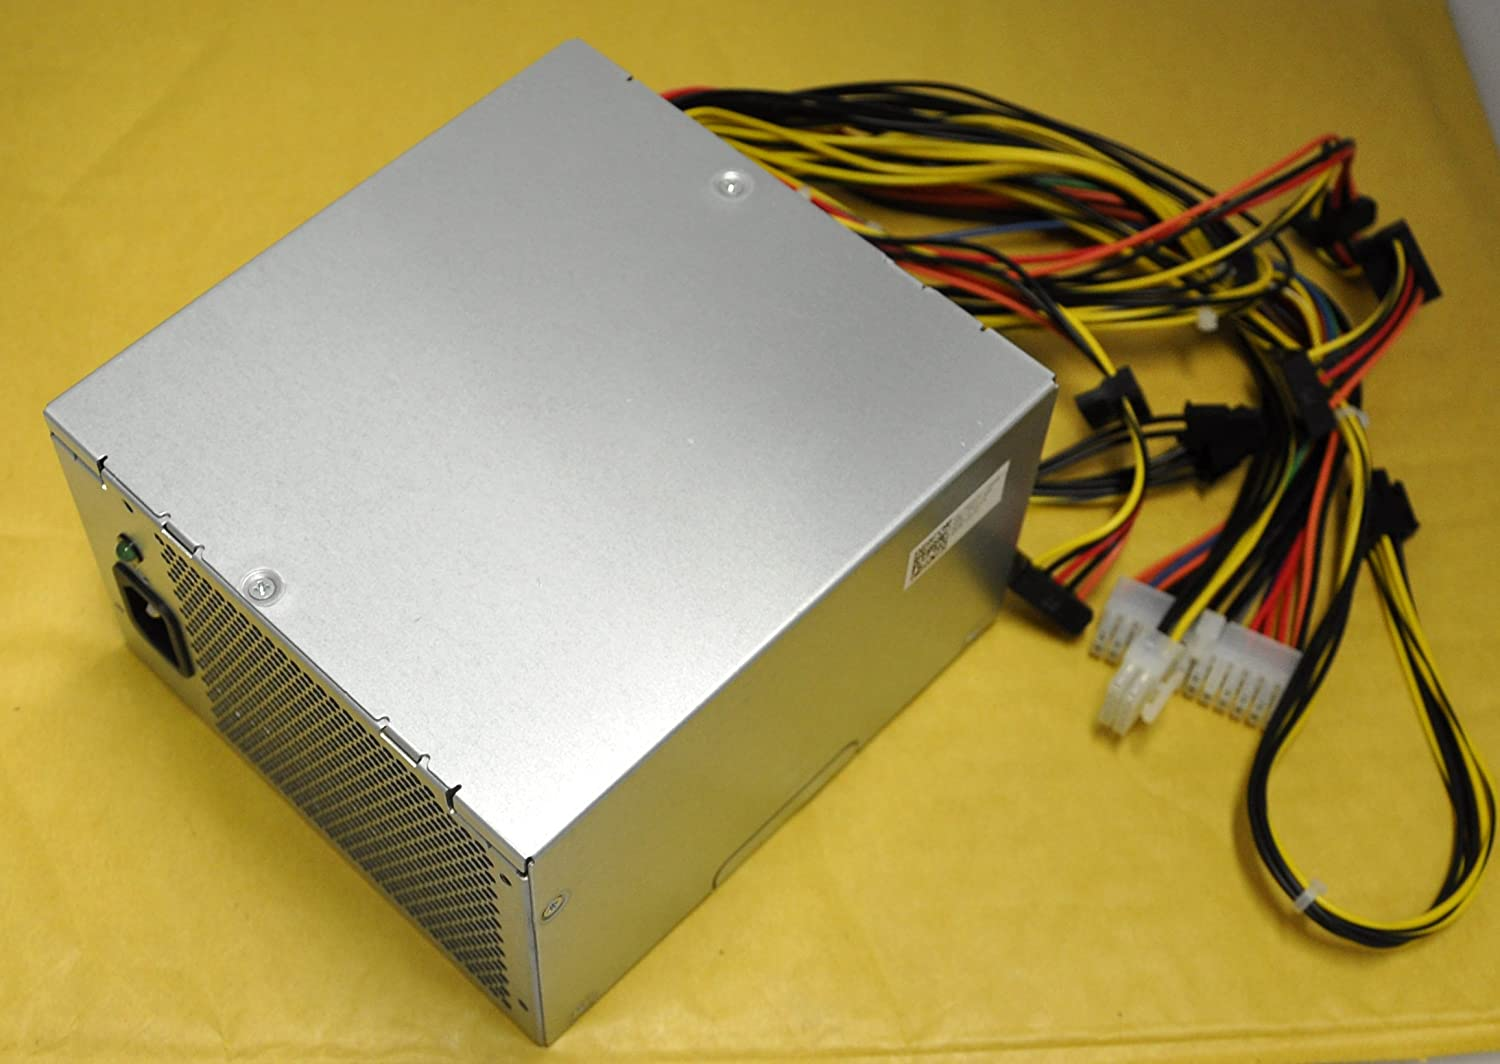 Genuine Dell 475W Power Supply PSU For Studio XPS 435 MT / 8000 / 9000 Systems Part Number: F217J, VP-9500073-000